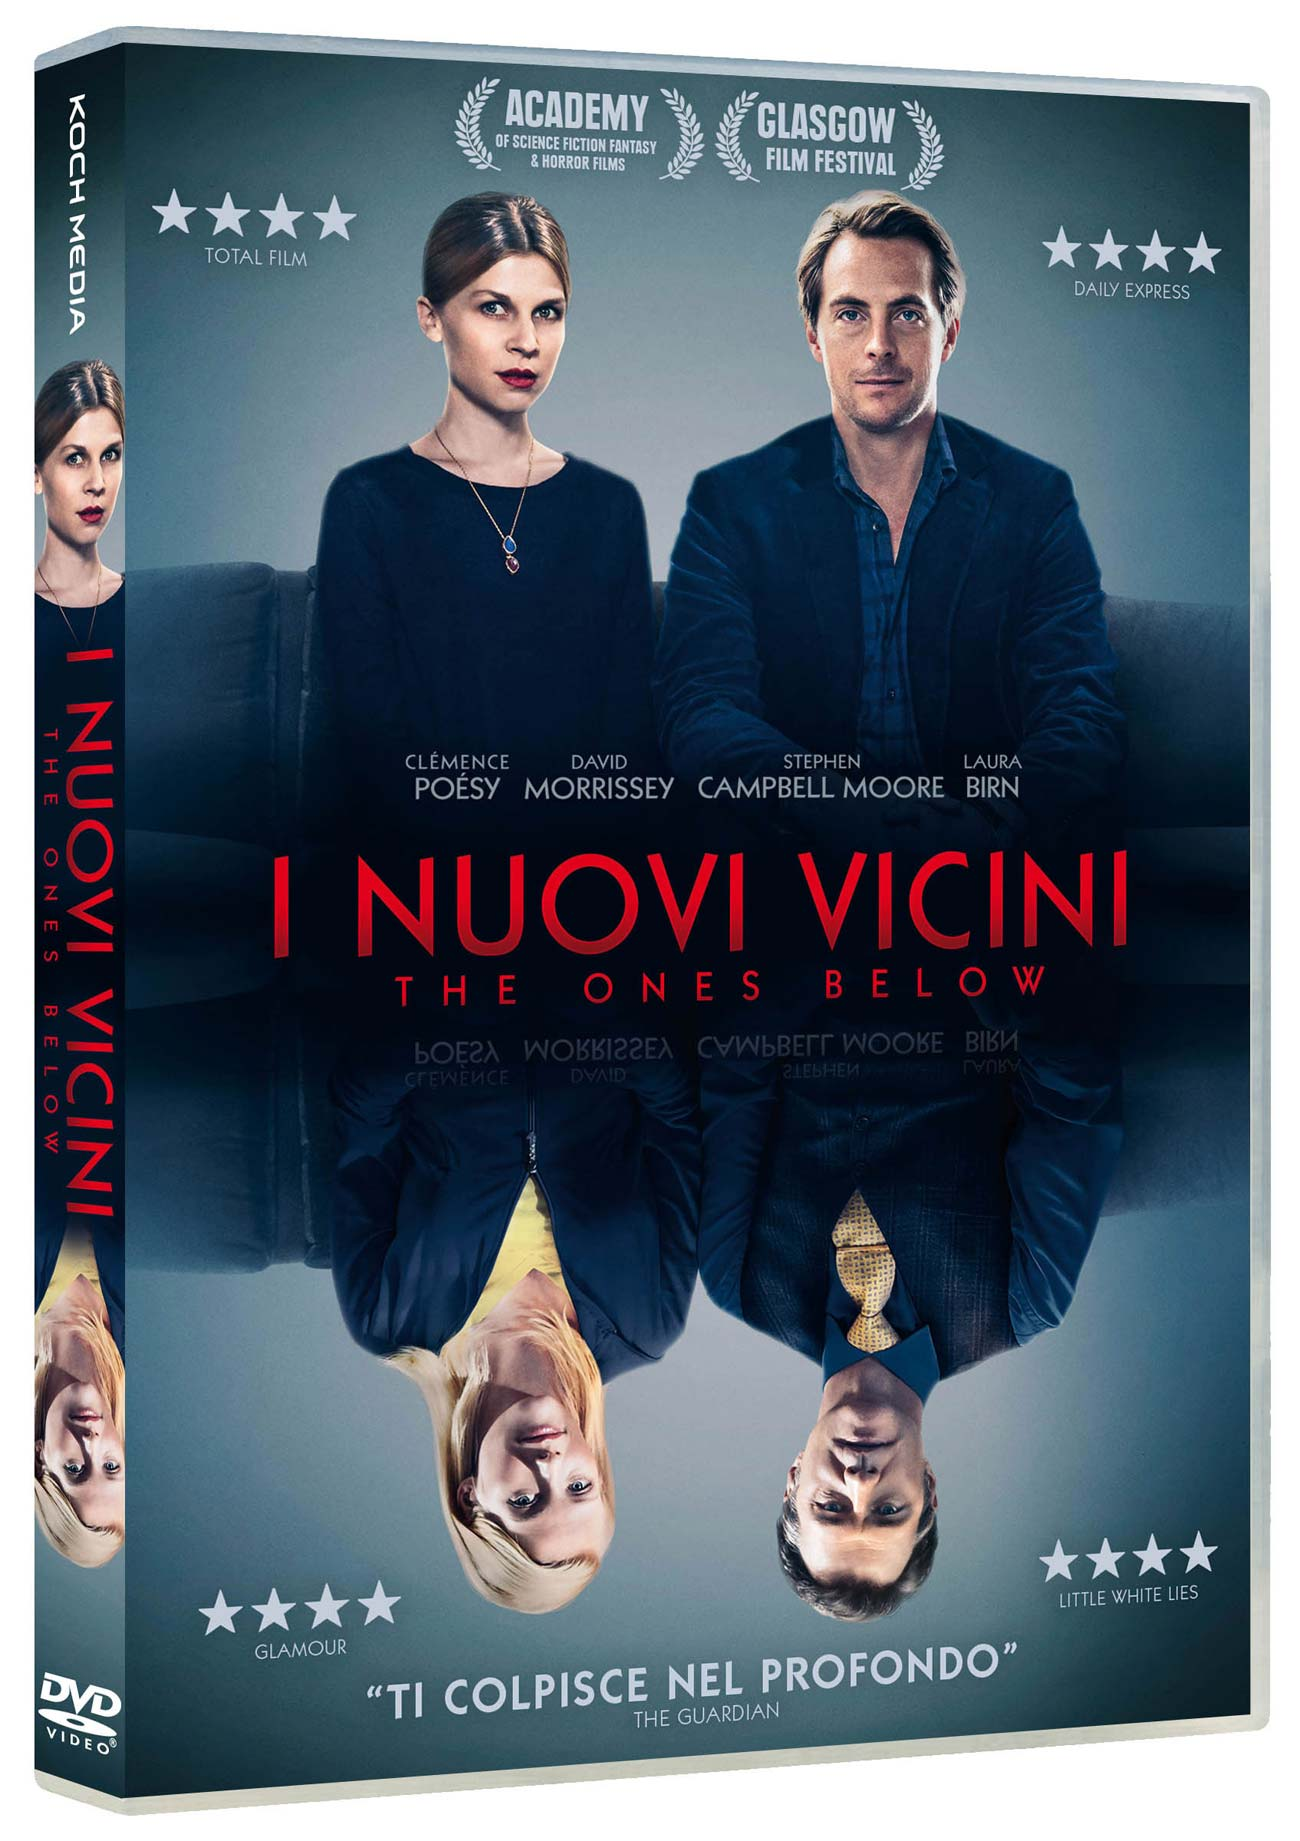 I NUOVI VICINI - THE ONES BELOW (DVD)